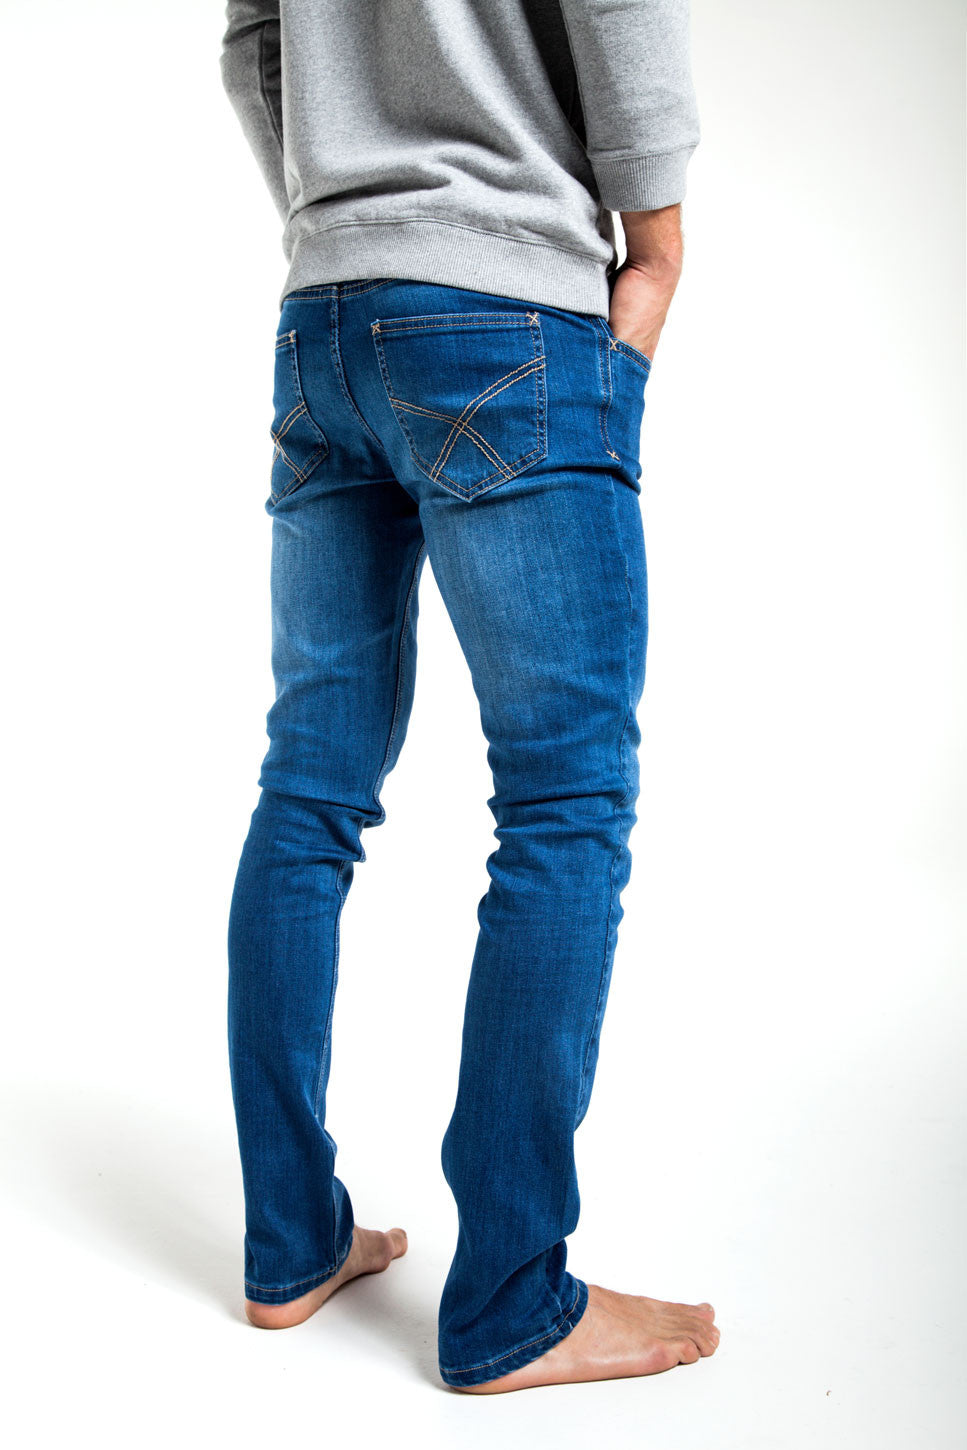 The Men's Denim Jeans